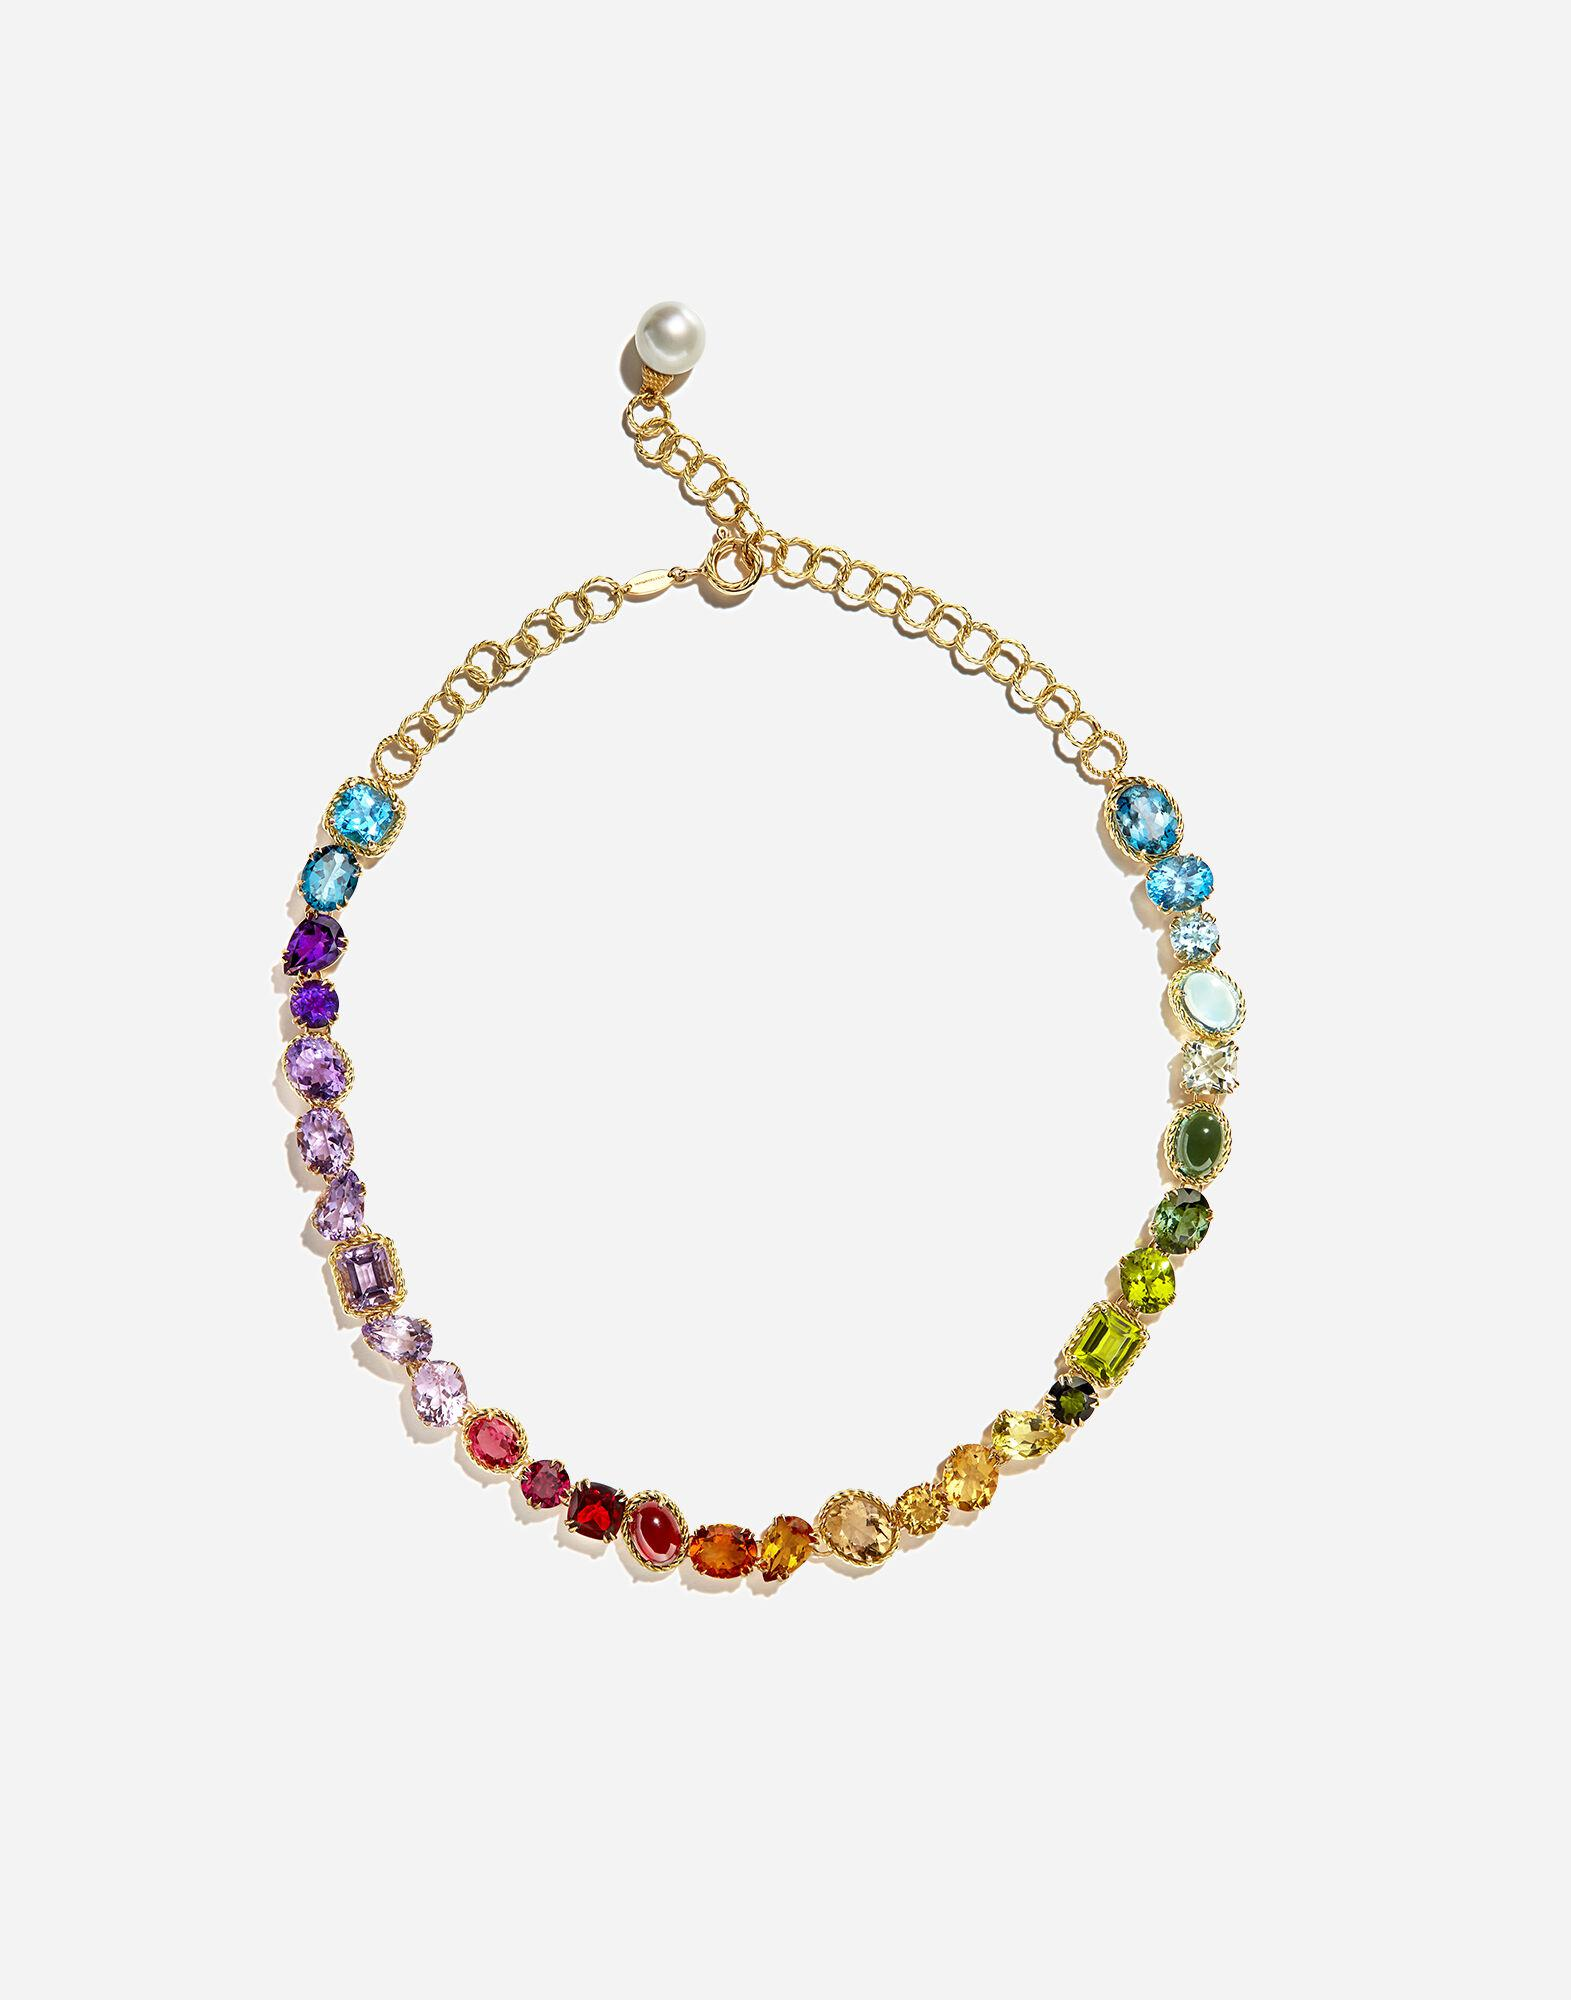 Necklace with multi-colored gems